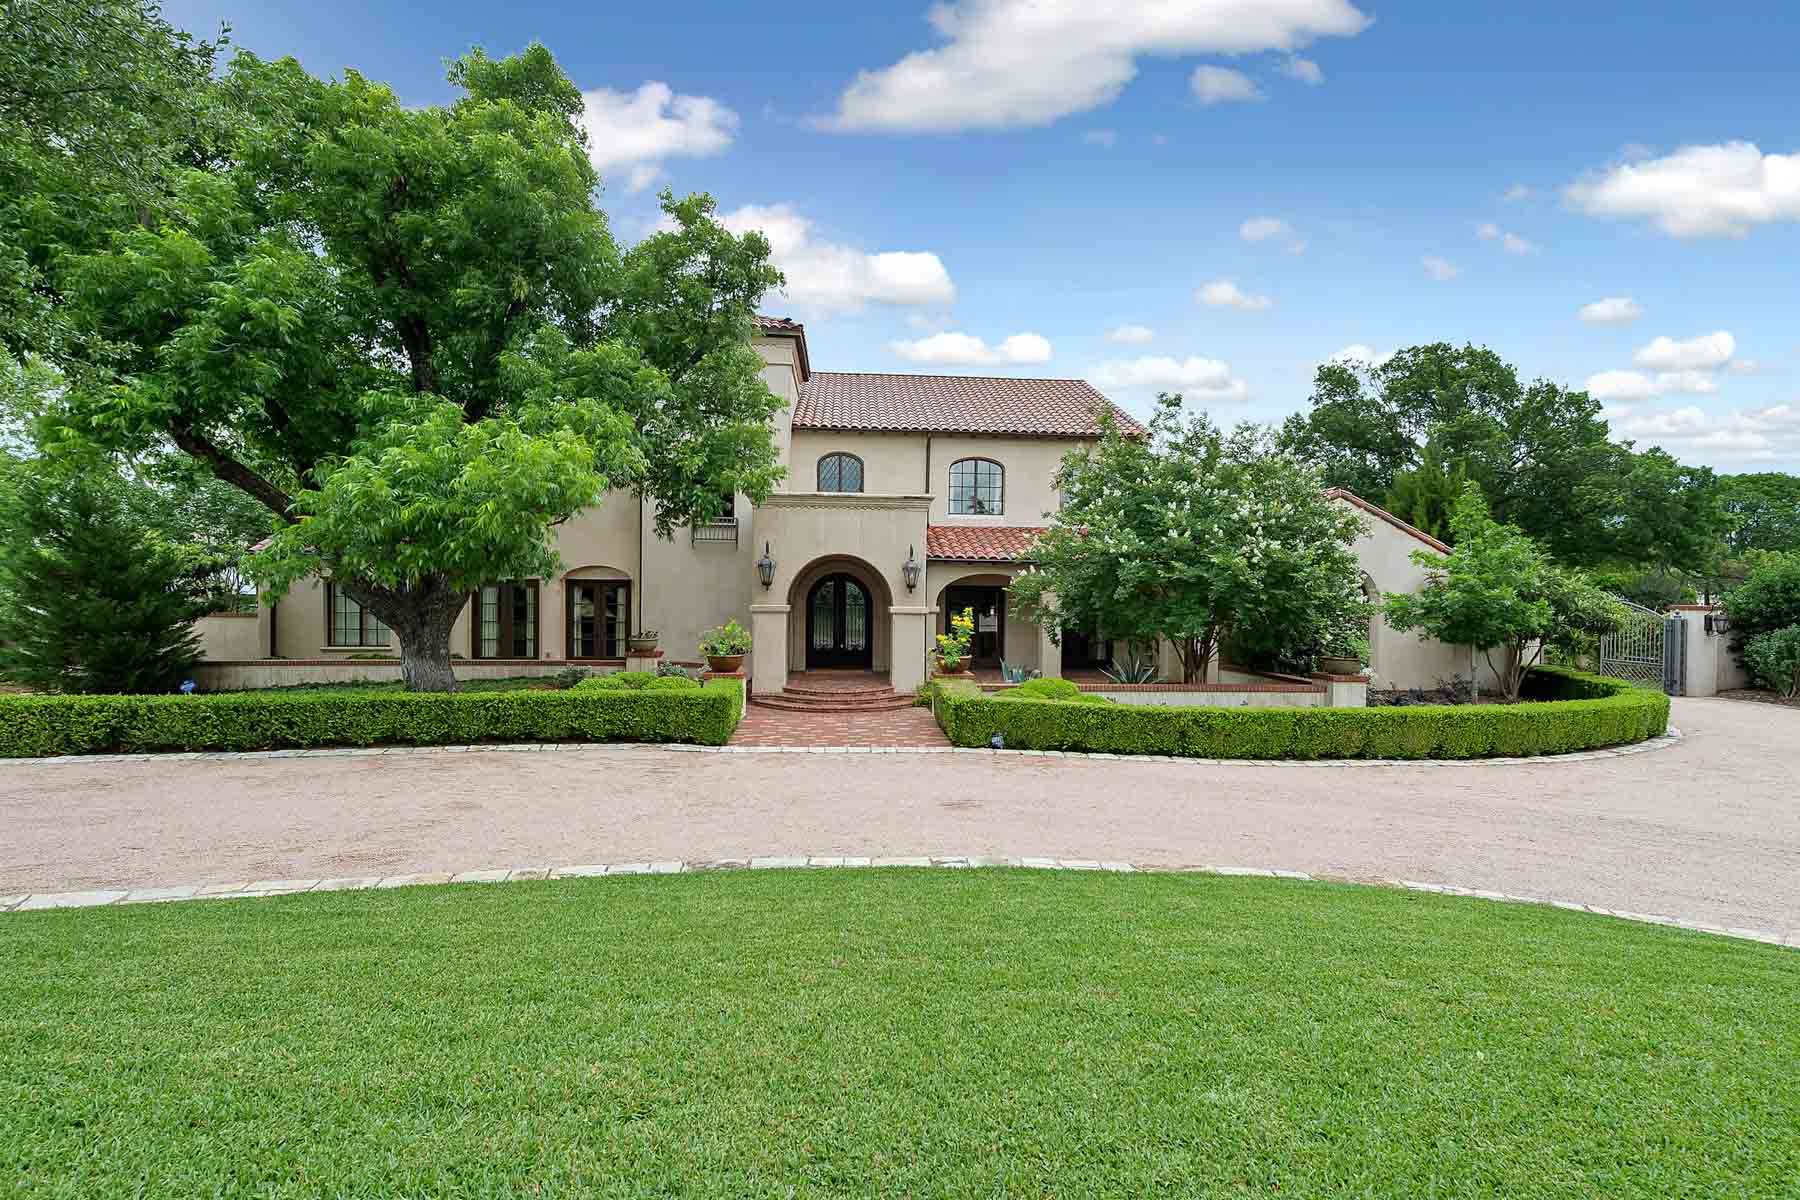 Casa para uma família para Venda às Beautiful Spanish Inspired Fort Worth Home 2017 Four Oaks Fort Worth, Texas, 76107 Estados Unidos